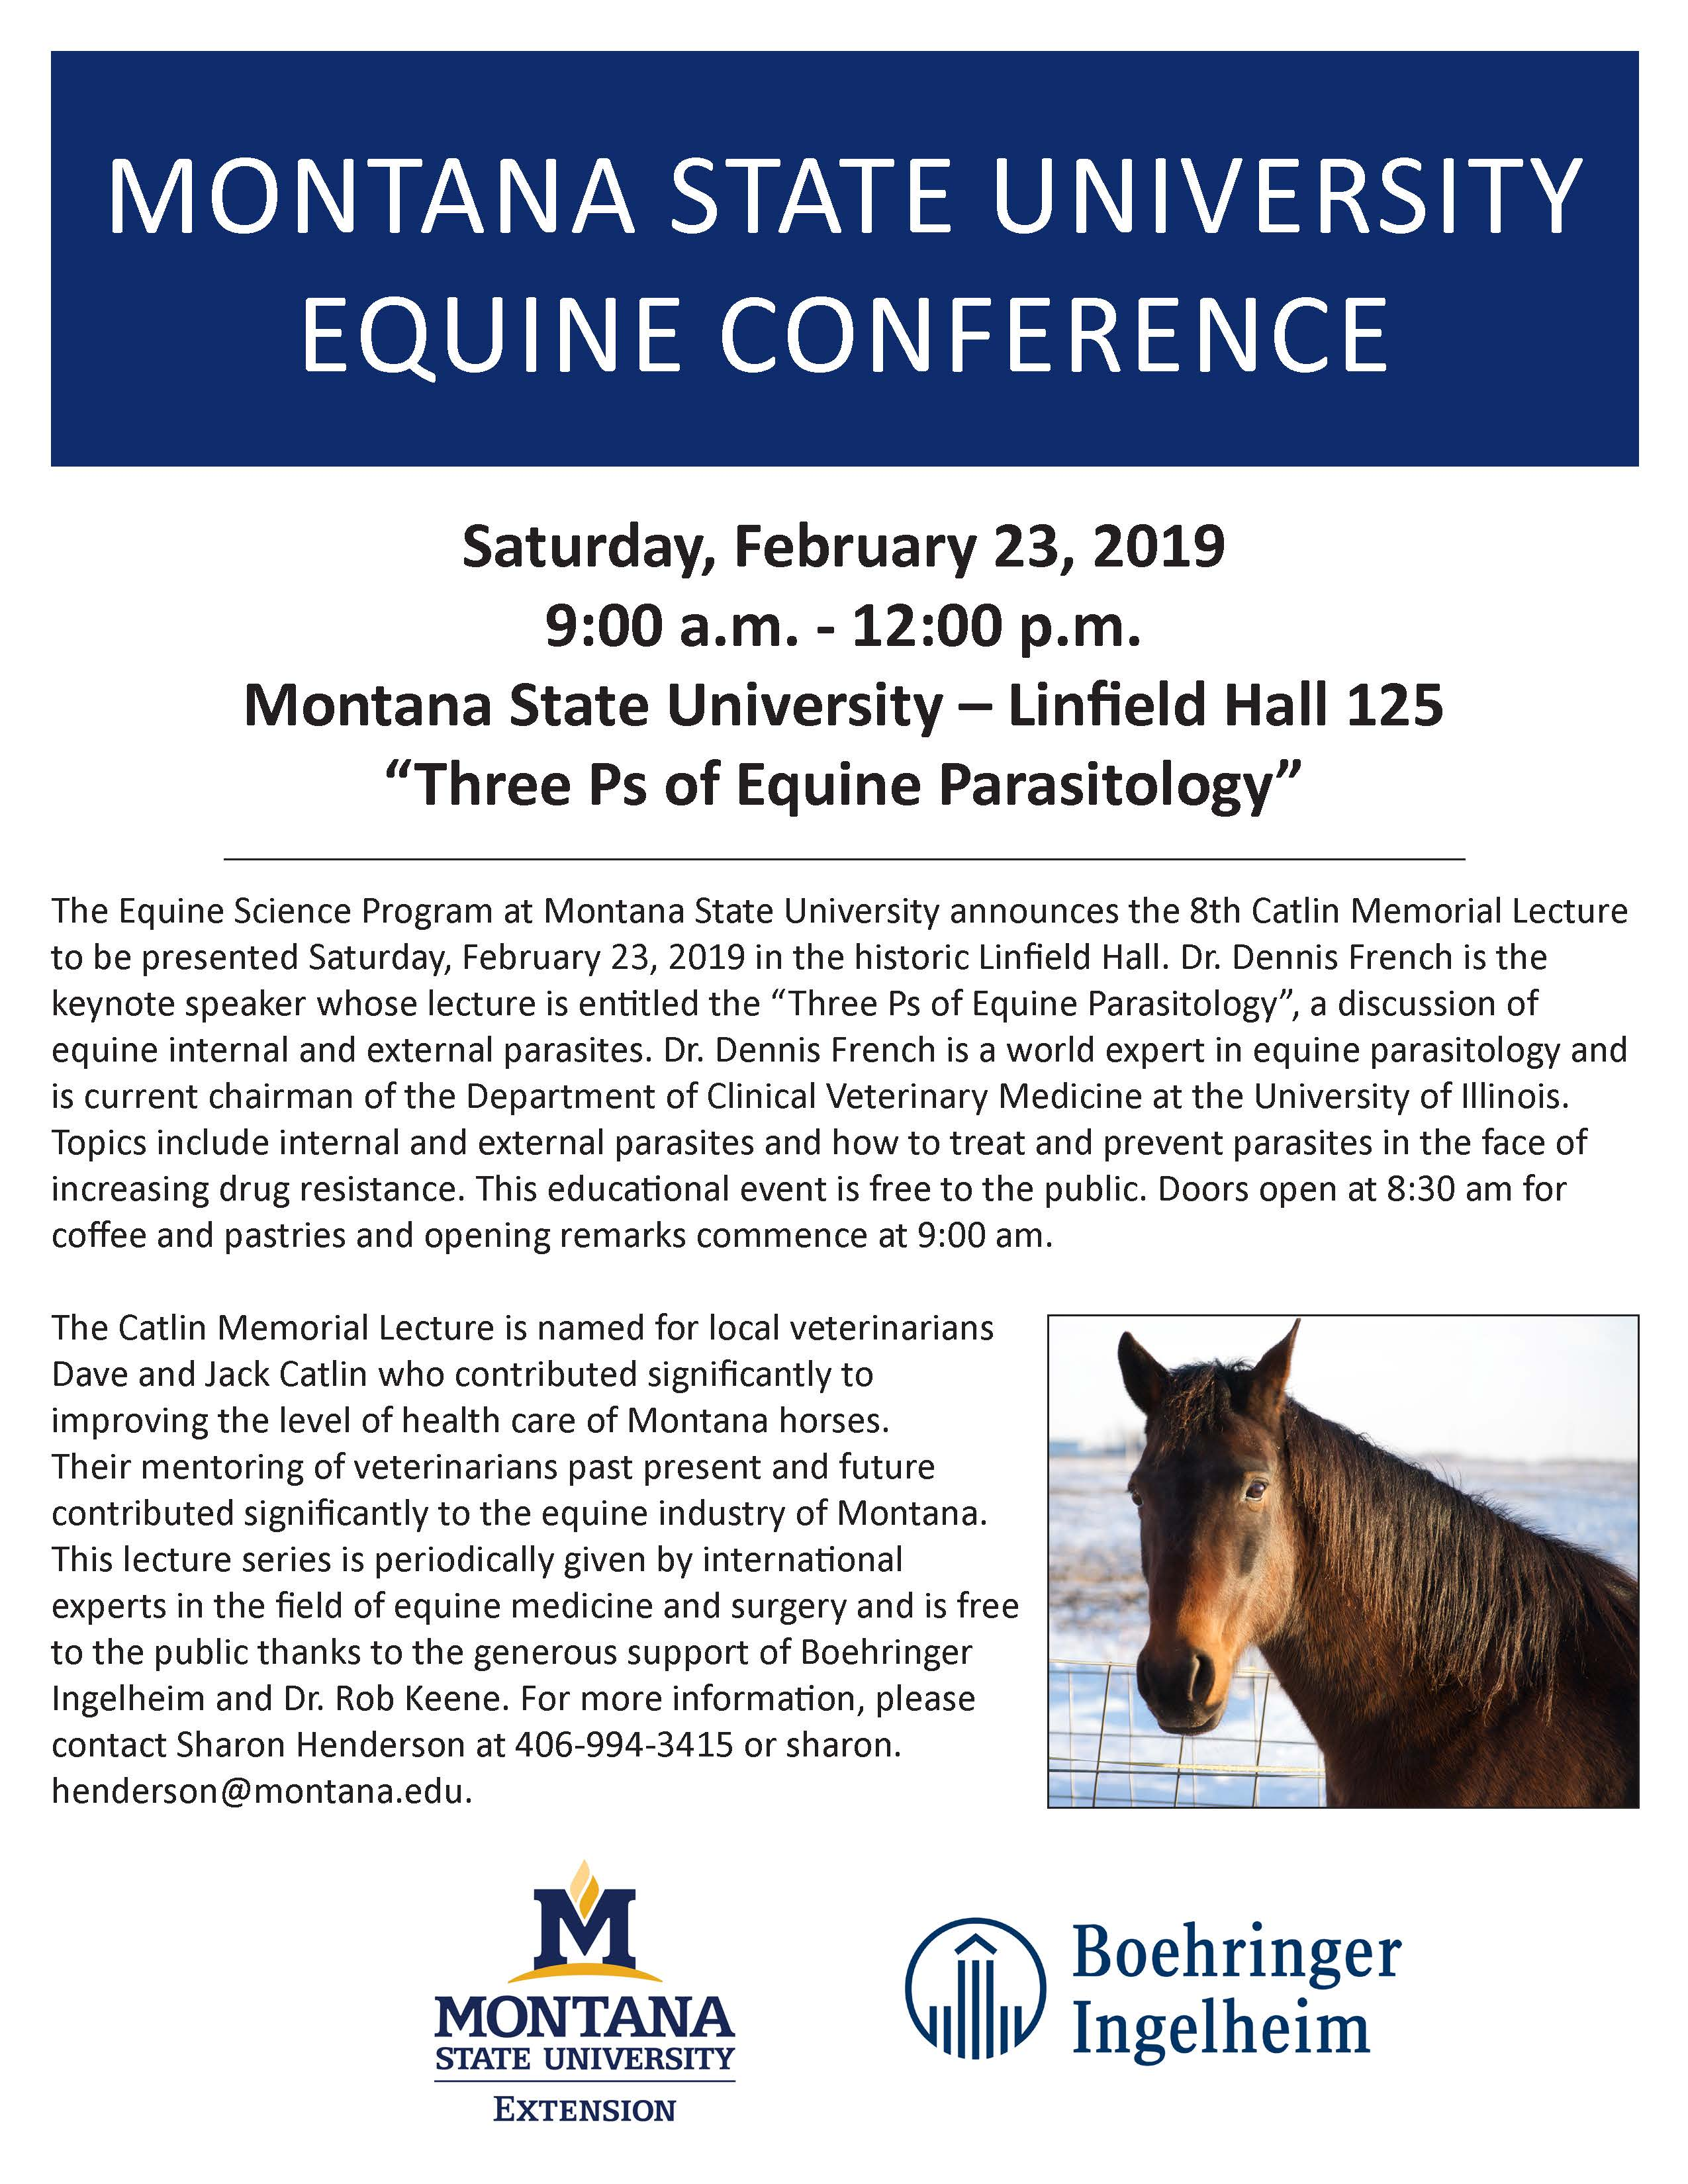 A flyer for the 2019 Equine Conference on the Three Ps of Equine Parasitology